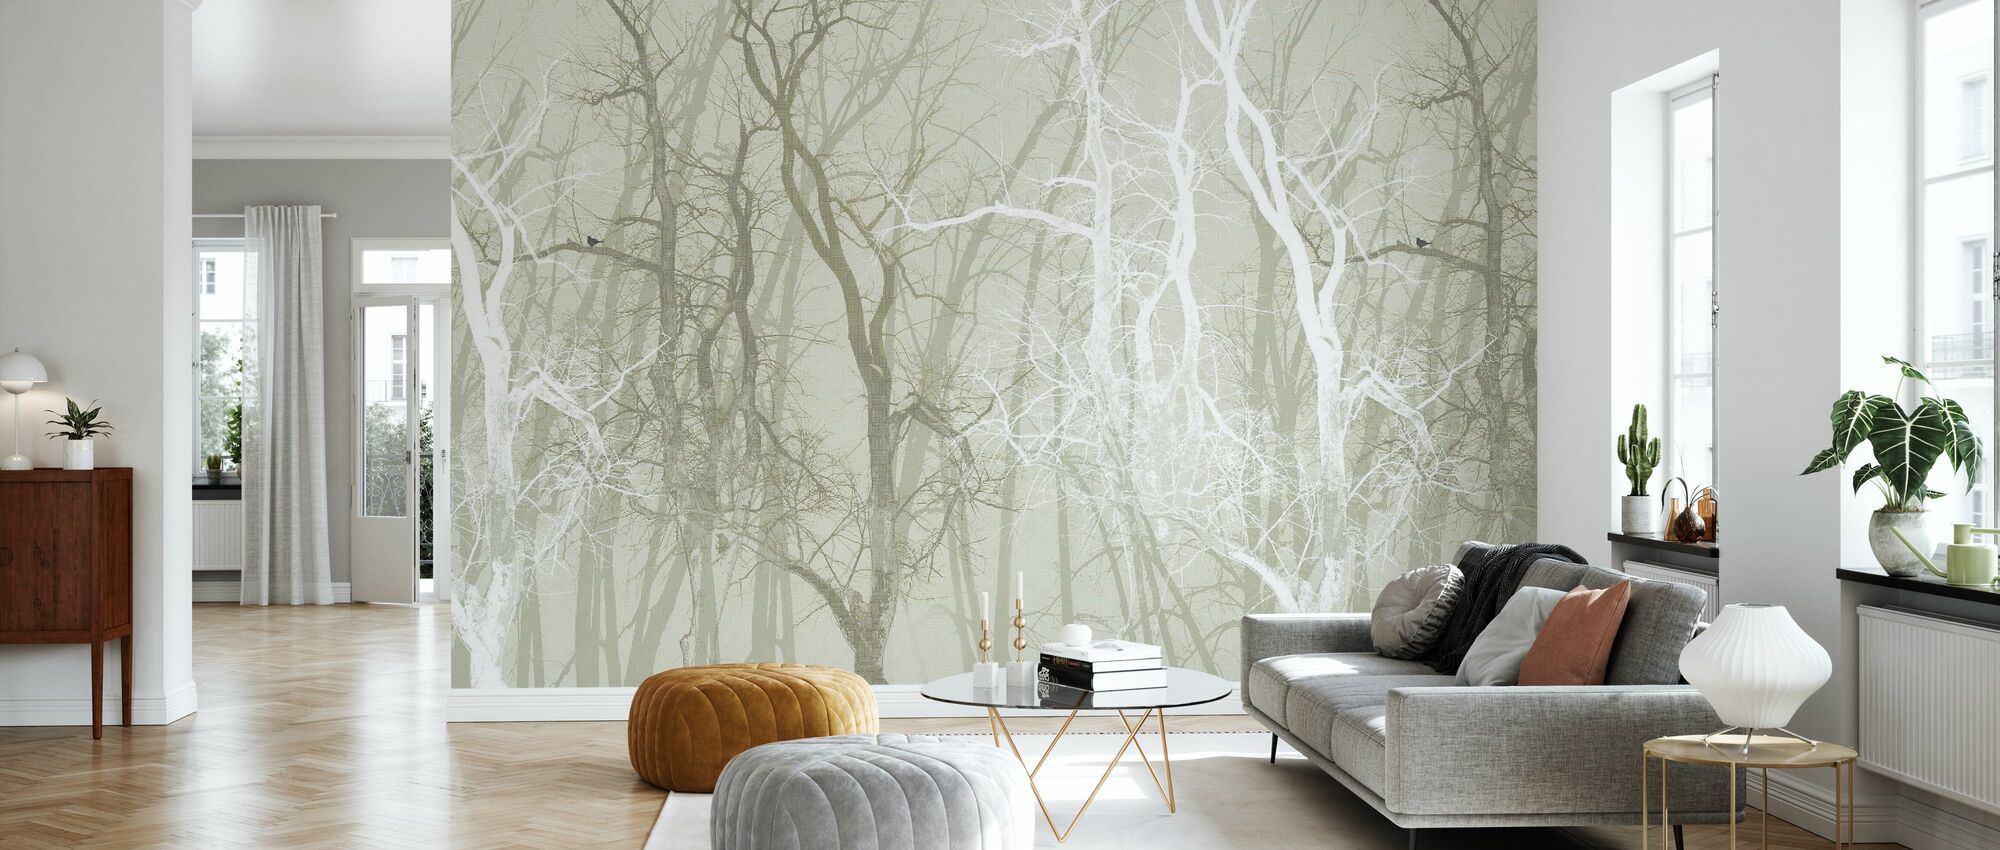 Wander Trees Sepia - Wallpaper - Living Room